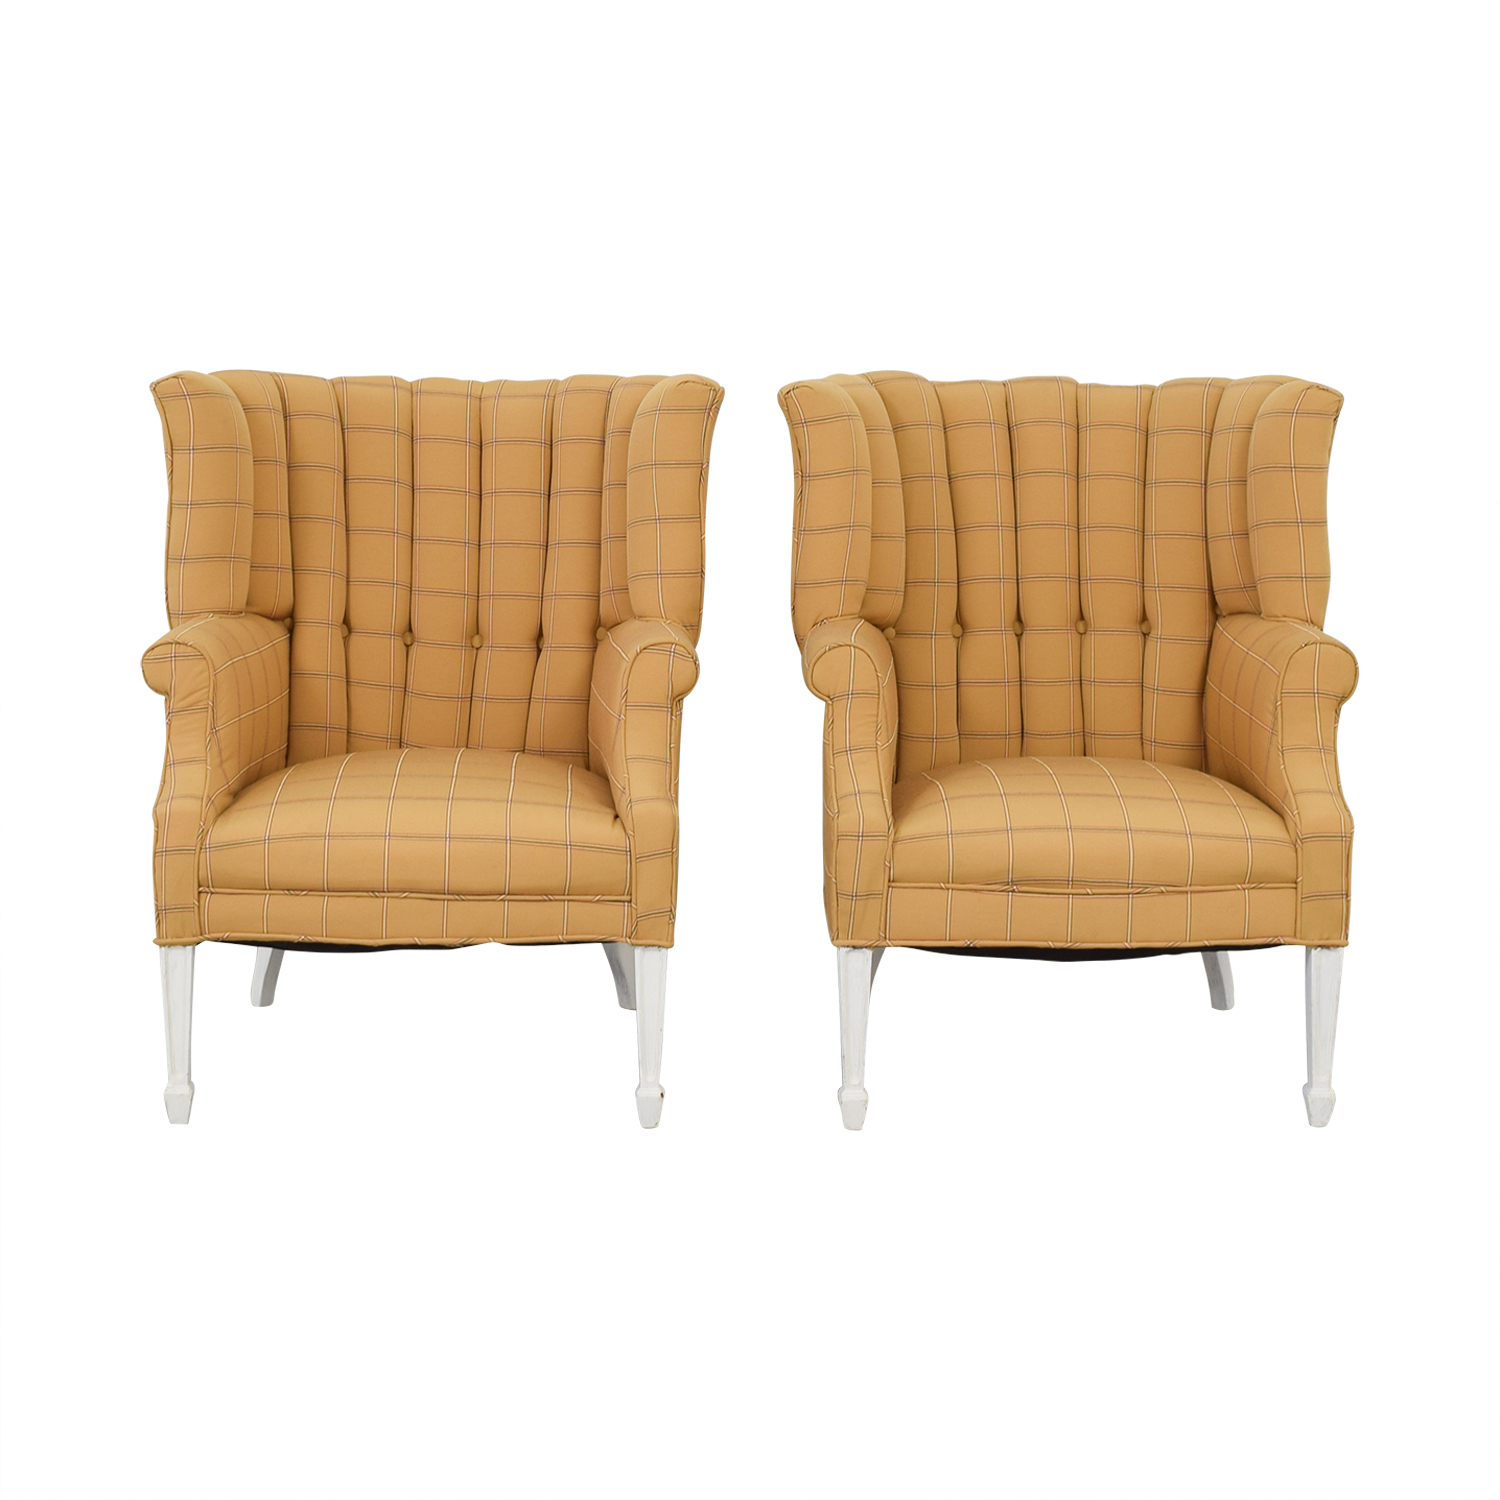 Vintage Yellow and Beige Plaid Wing Back Accent Chairs used